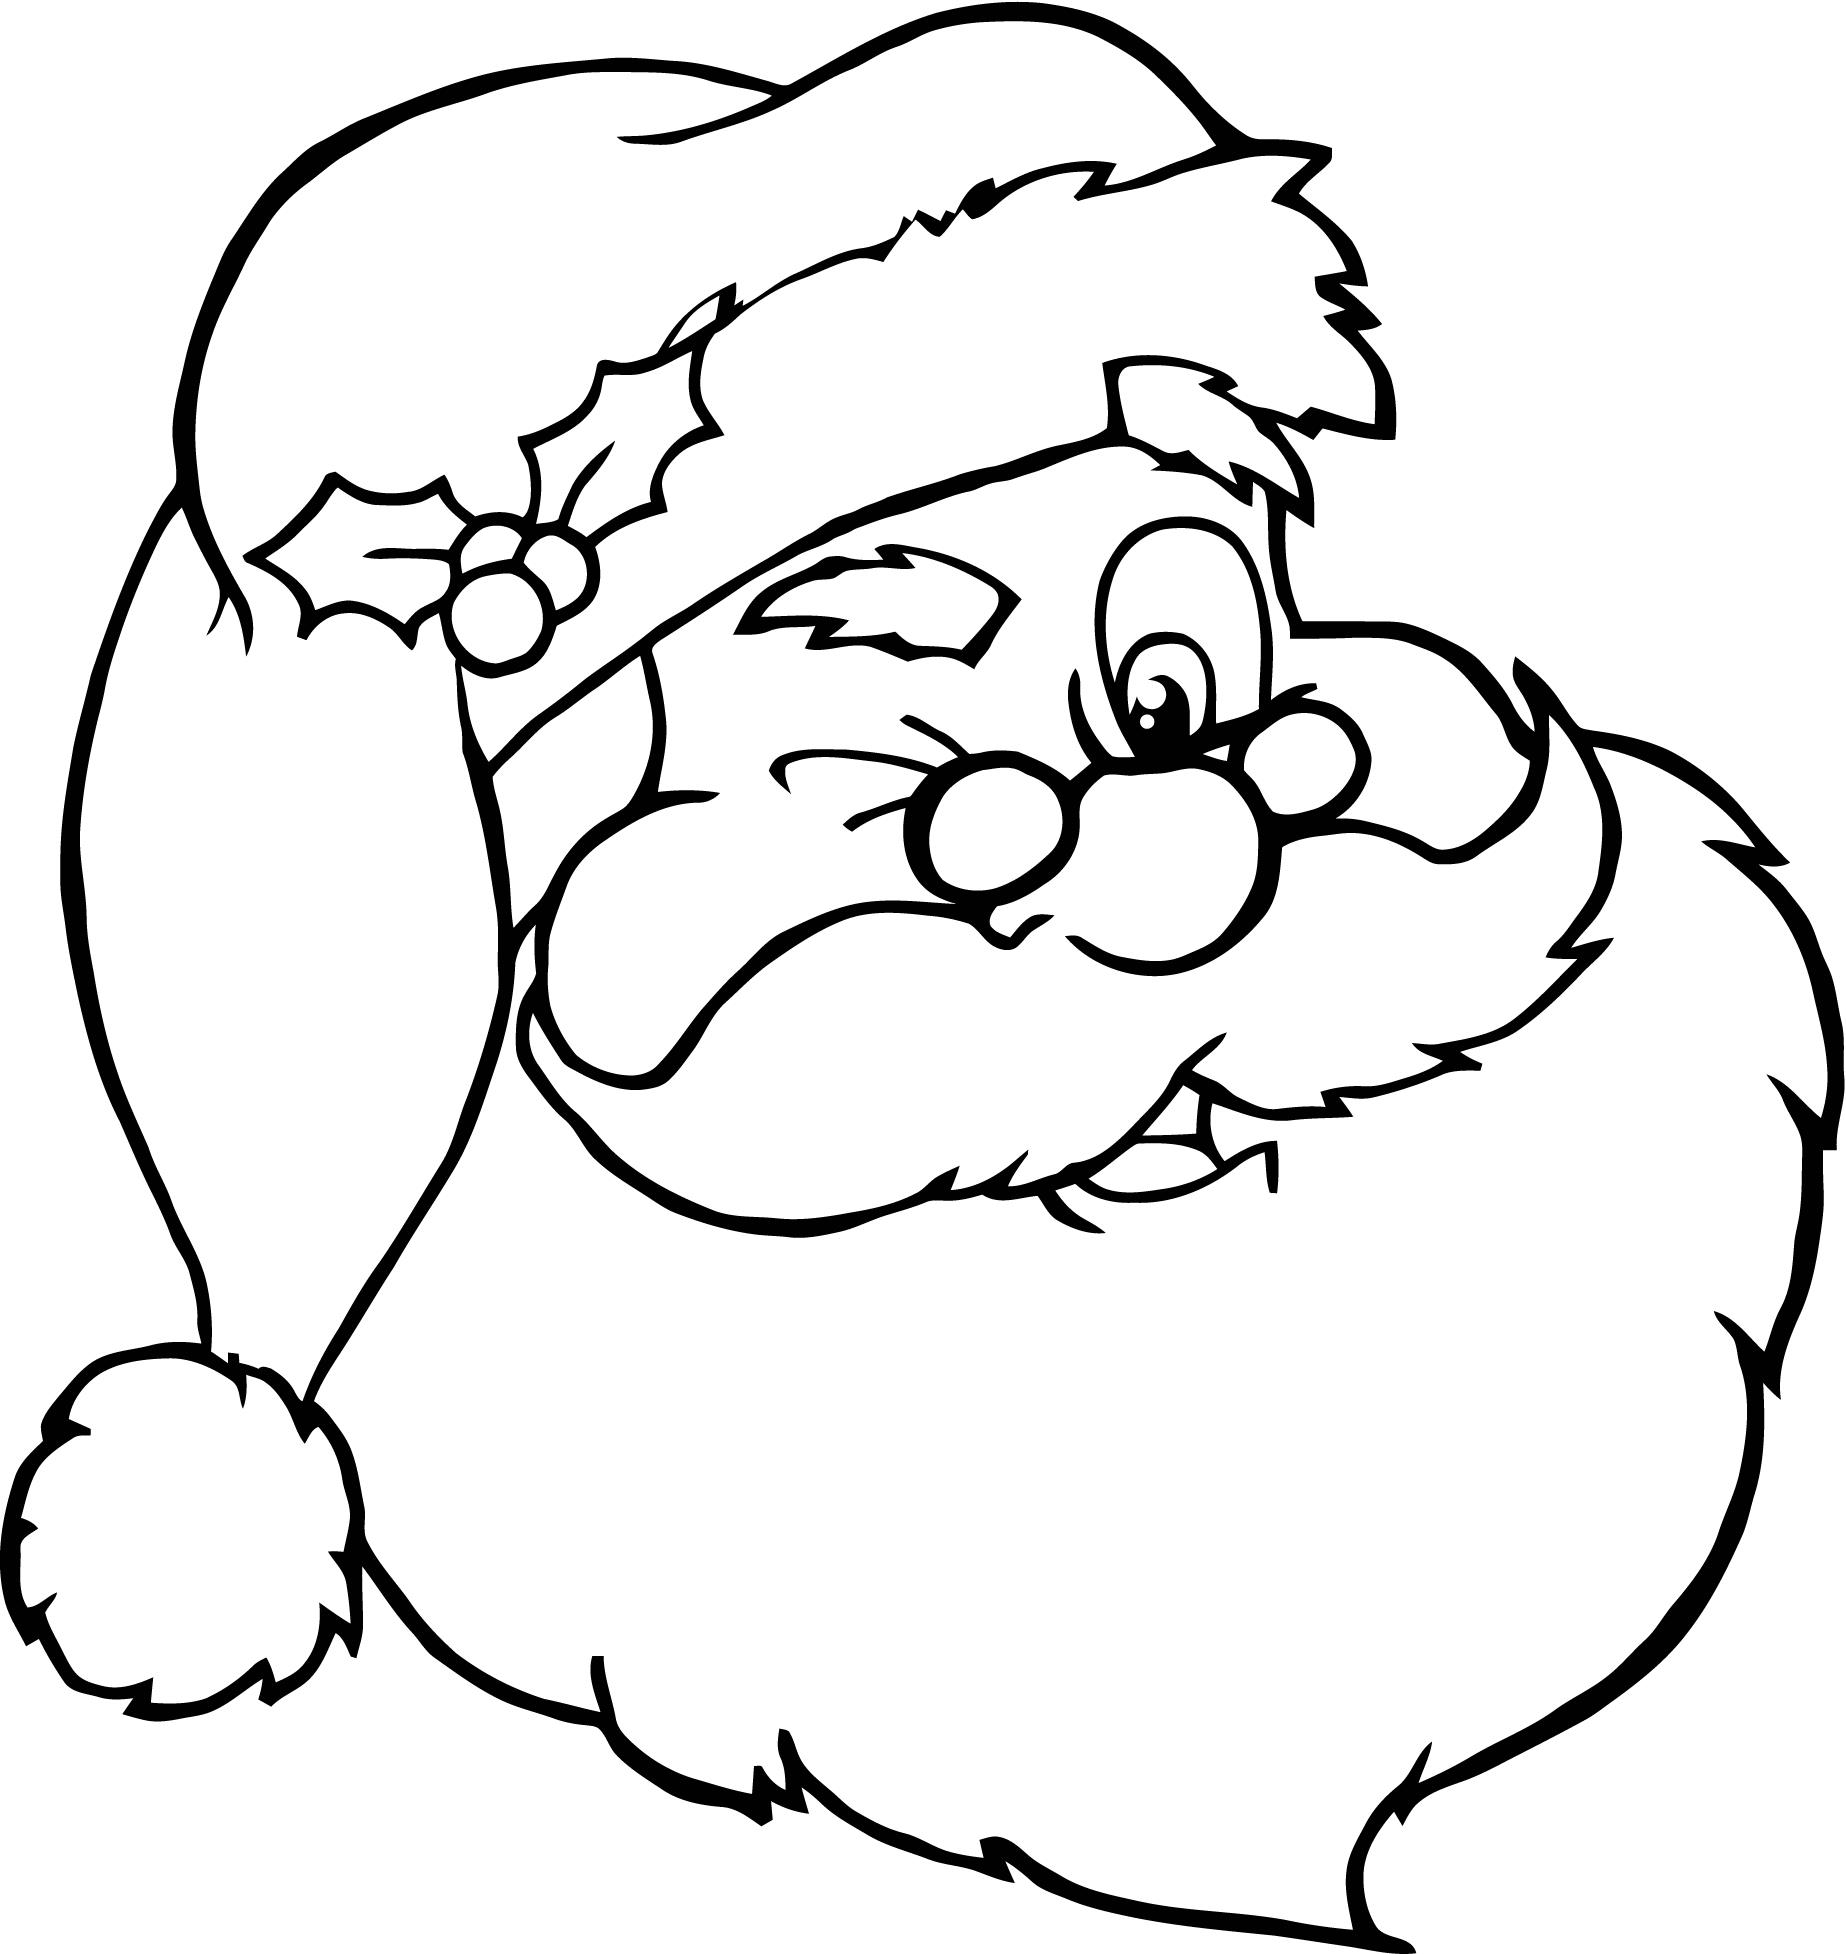 Santa Head Coloring Sheet With Awesome Cartoon Claus Pages Design Printable